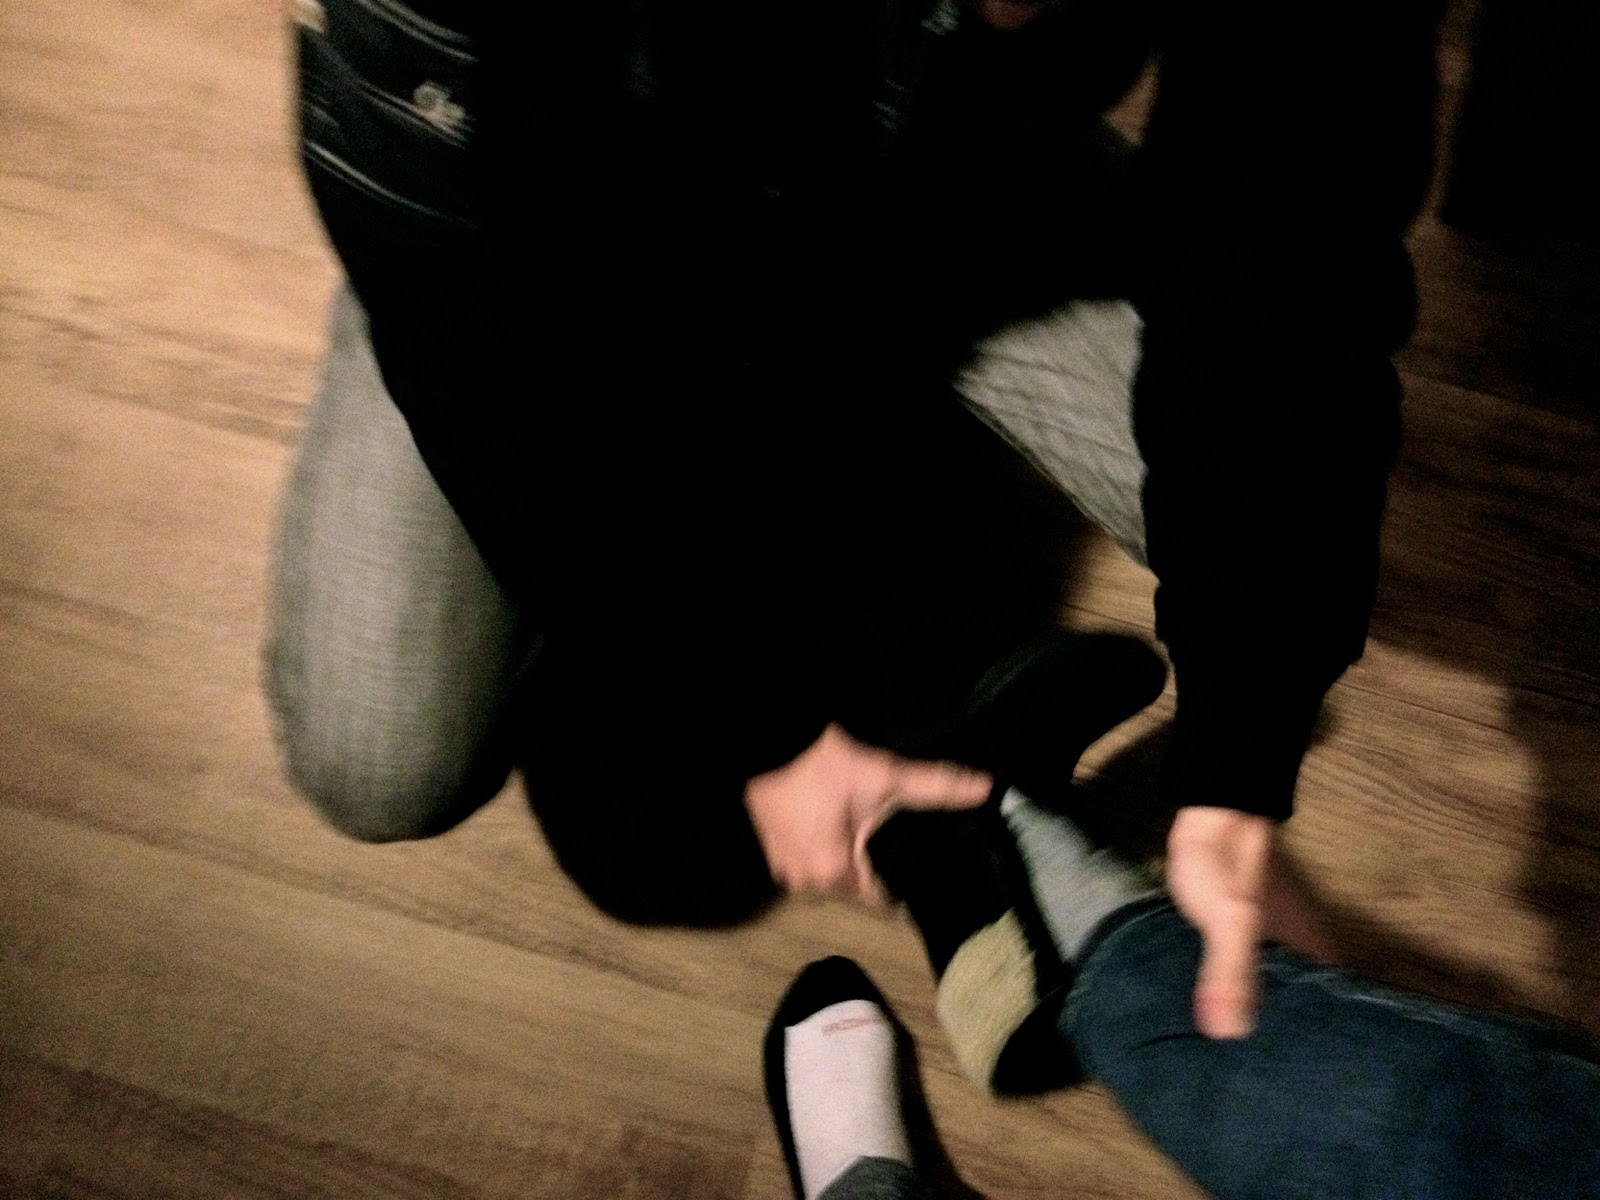 ryannabella: just a husband taking off his wife's shoes.